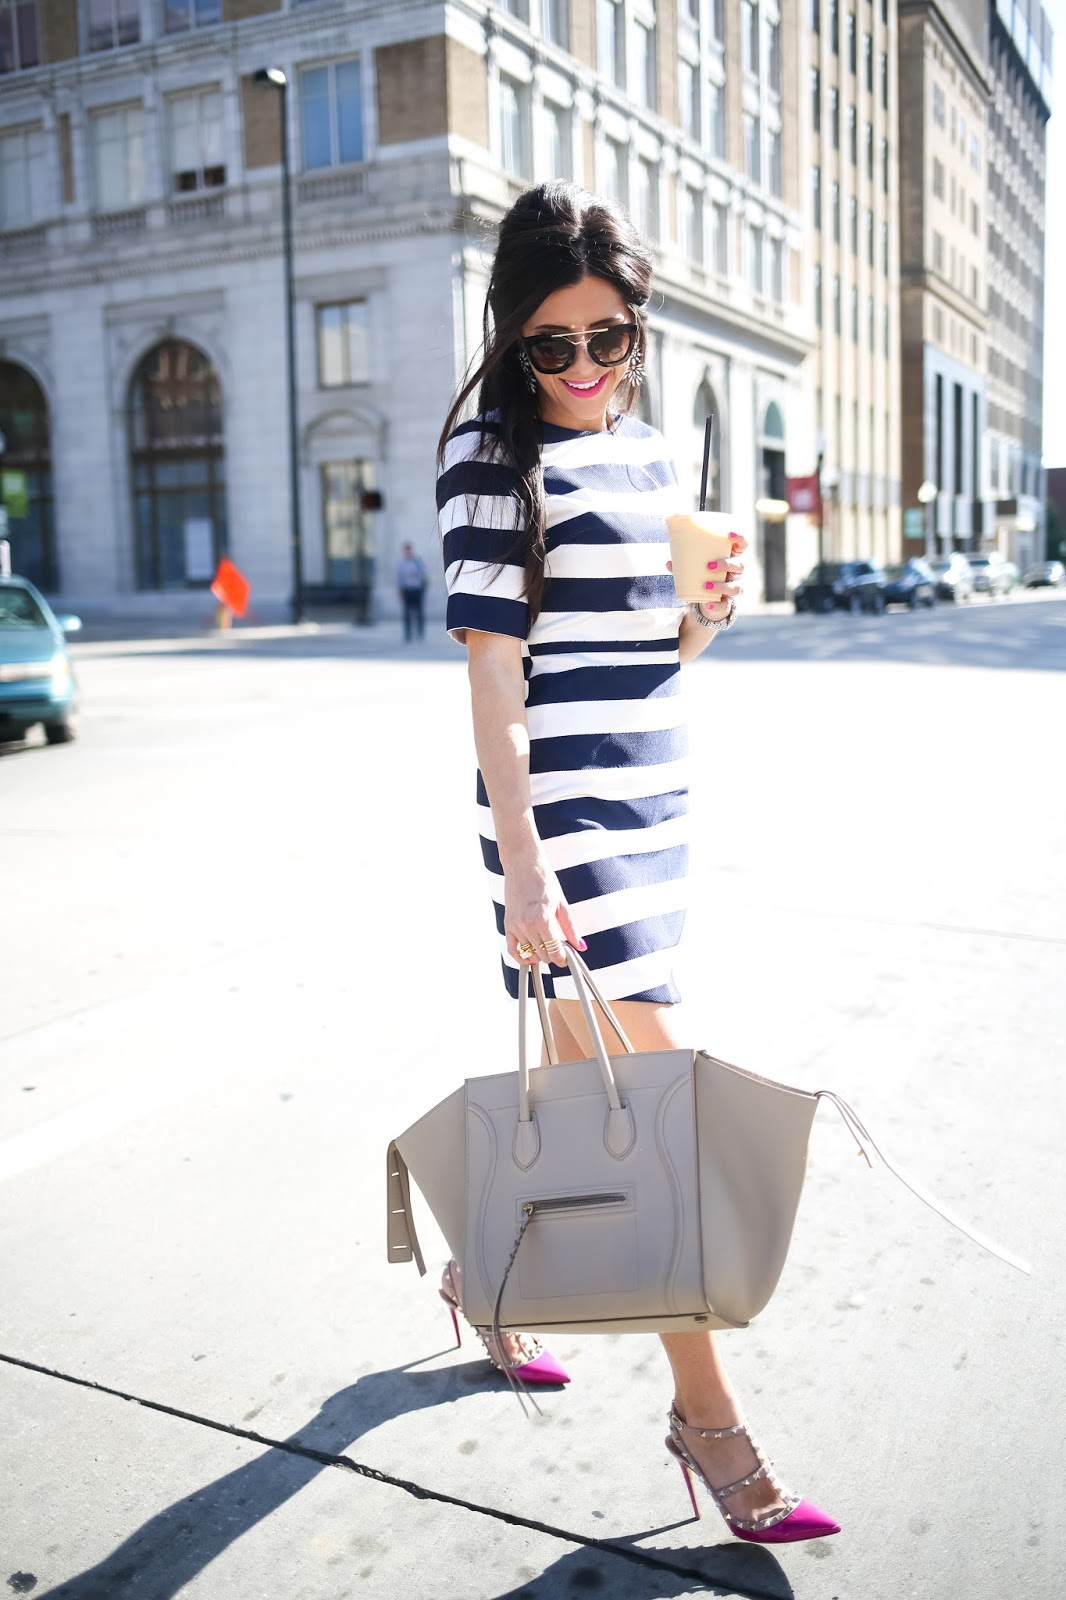 celine handbag shop online - topshop striped dress nordstrom topshop stripe dress pink valentino rockstud heels valentino rockstud look alikes prada sunglasses with gold bar celine  ...